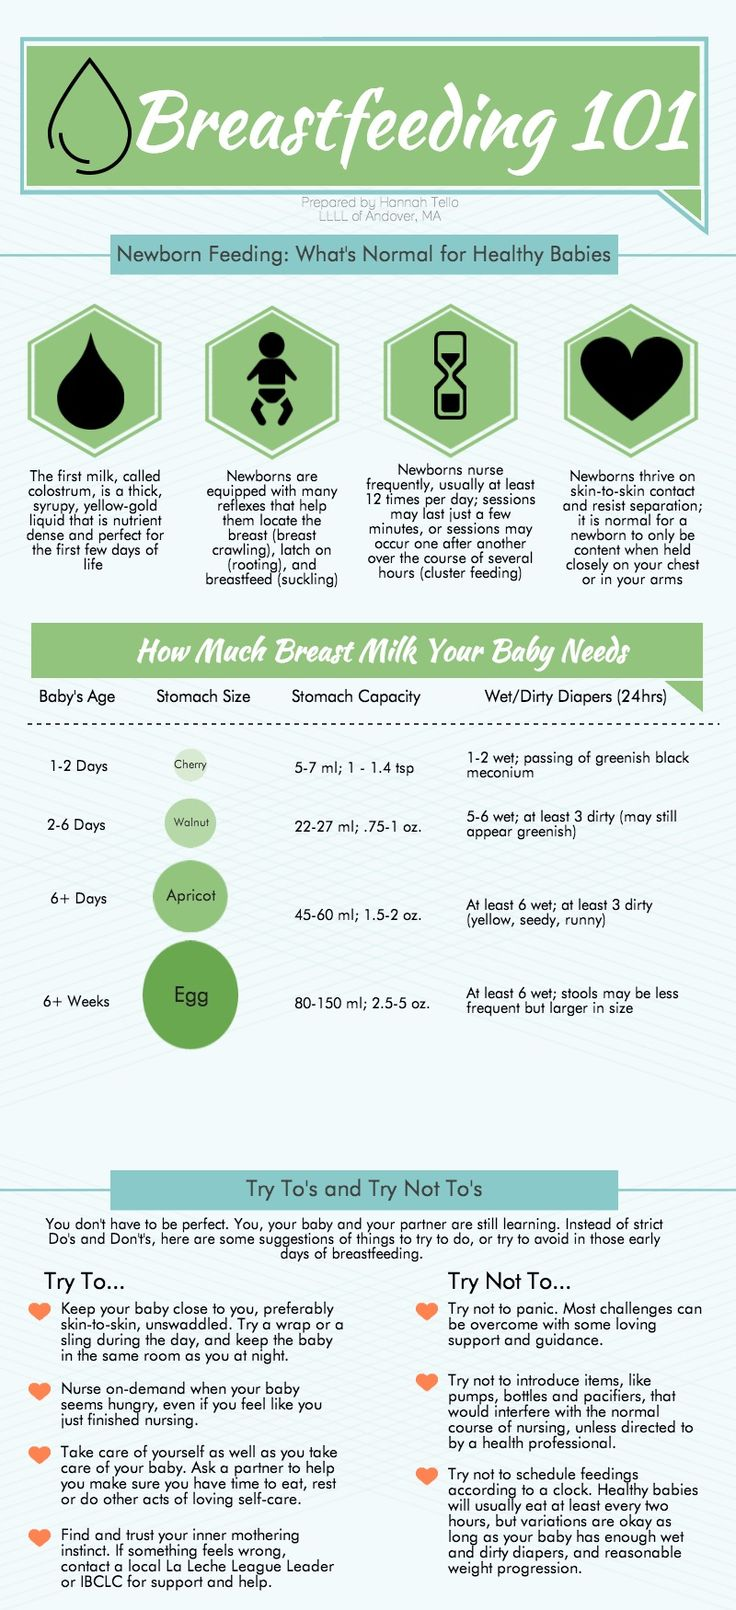 It's World Breastfeeding Week! Let's Celebrate with a Handy Infographic!